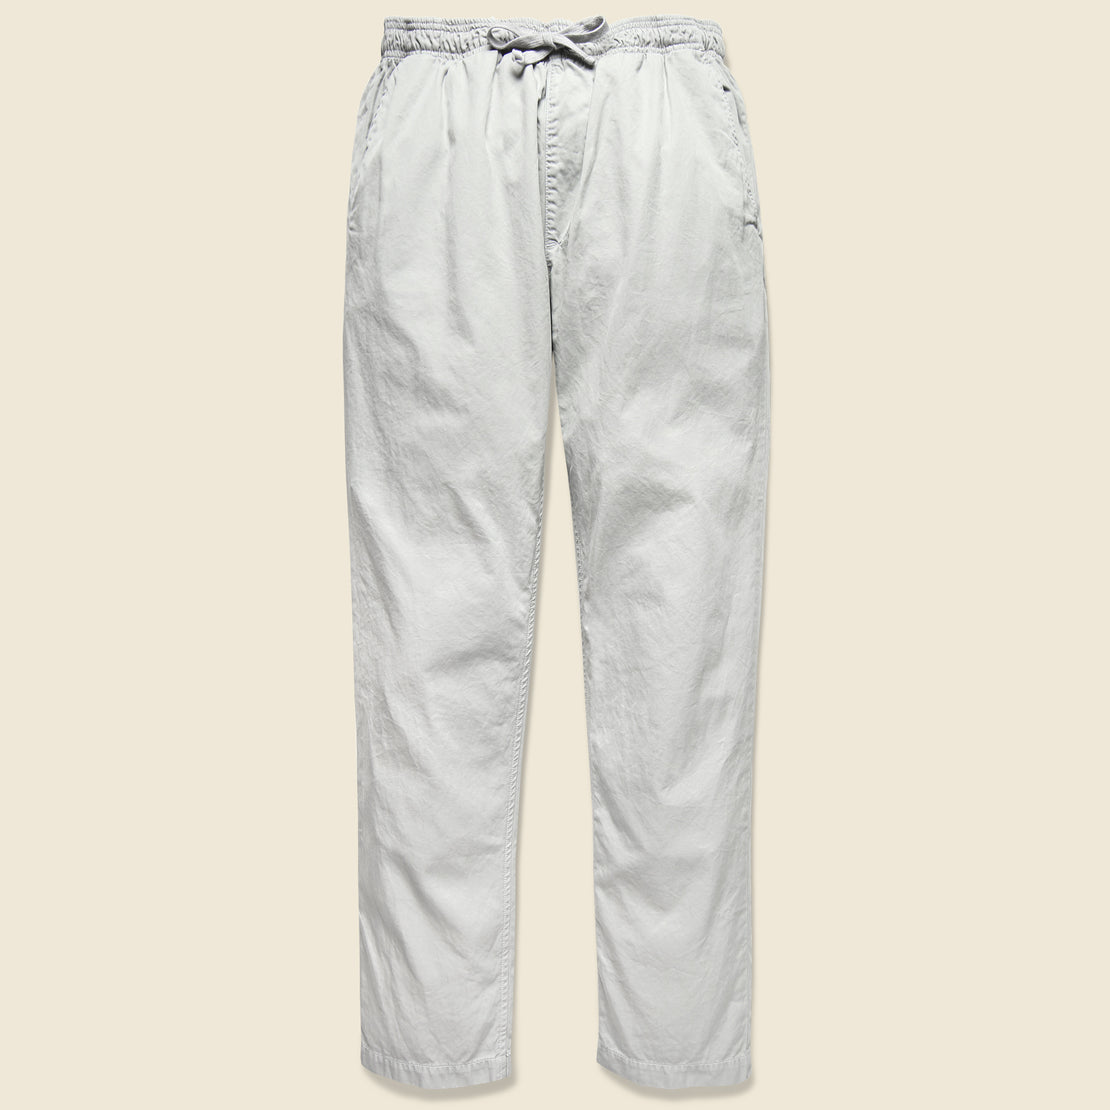 Save Khaki Light Twill Easy Chino - Cement